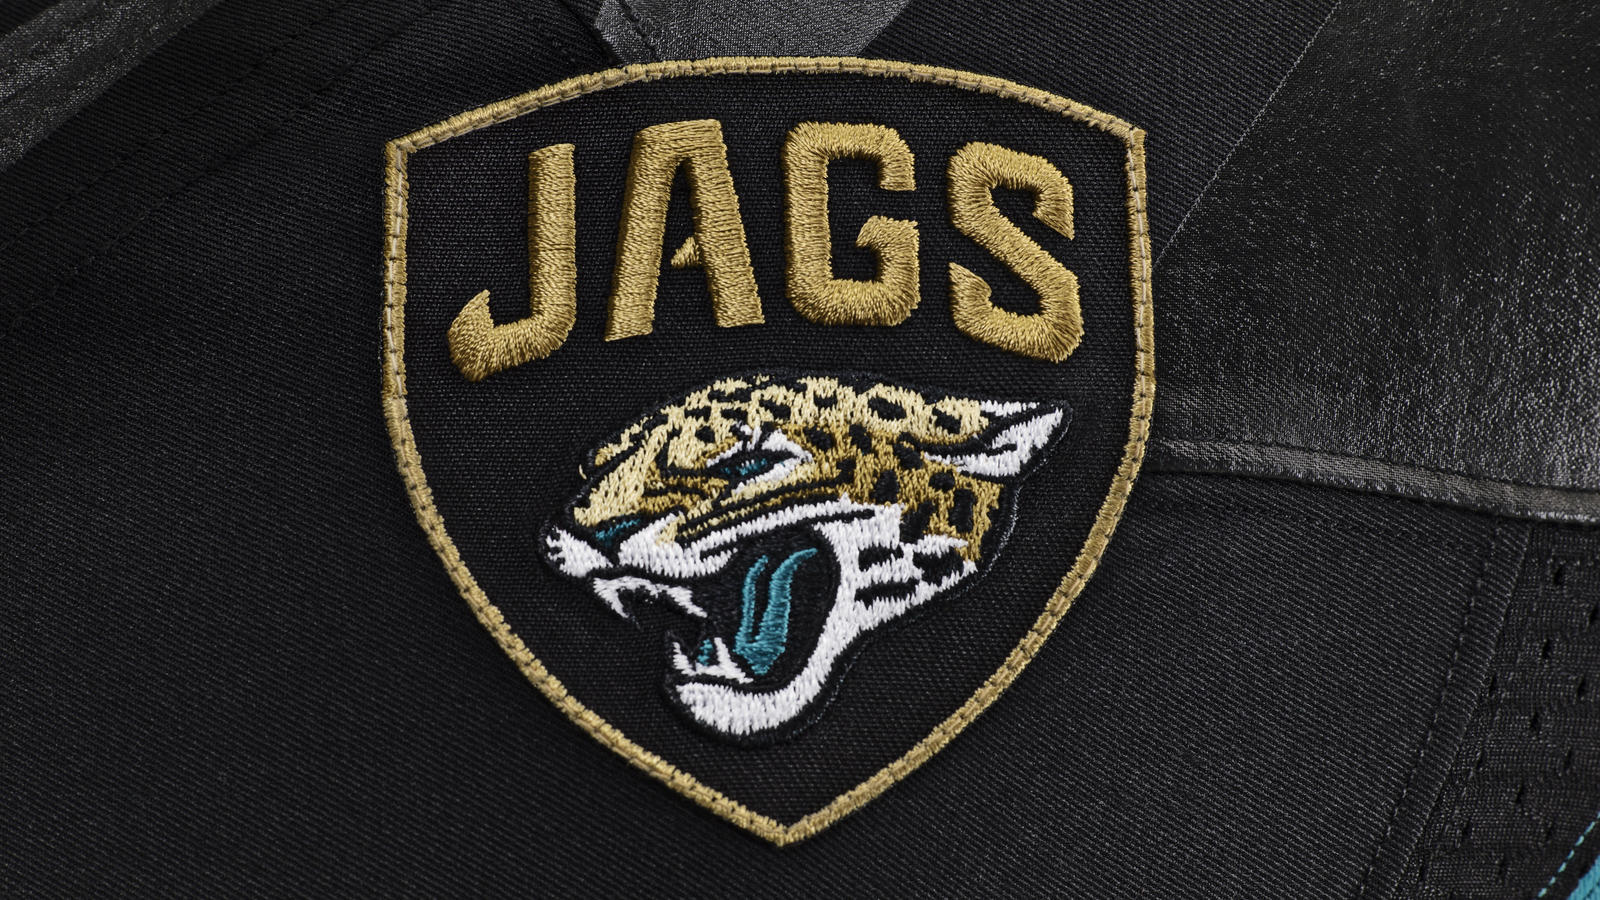 Jaguars Nfl Nike Elite 51 Uniform Jags Patch